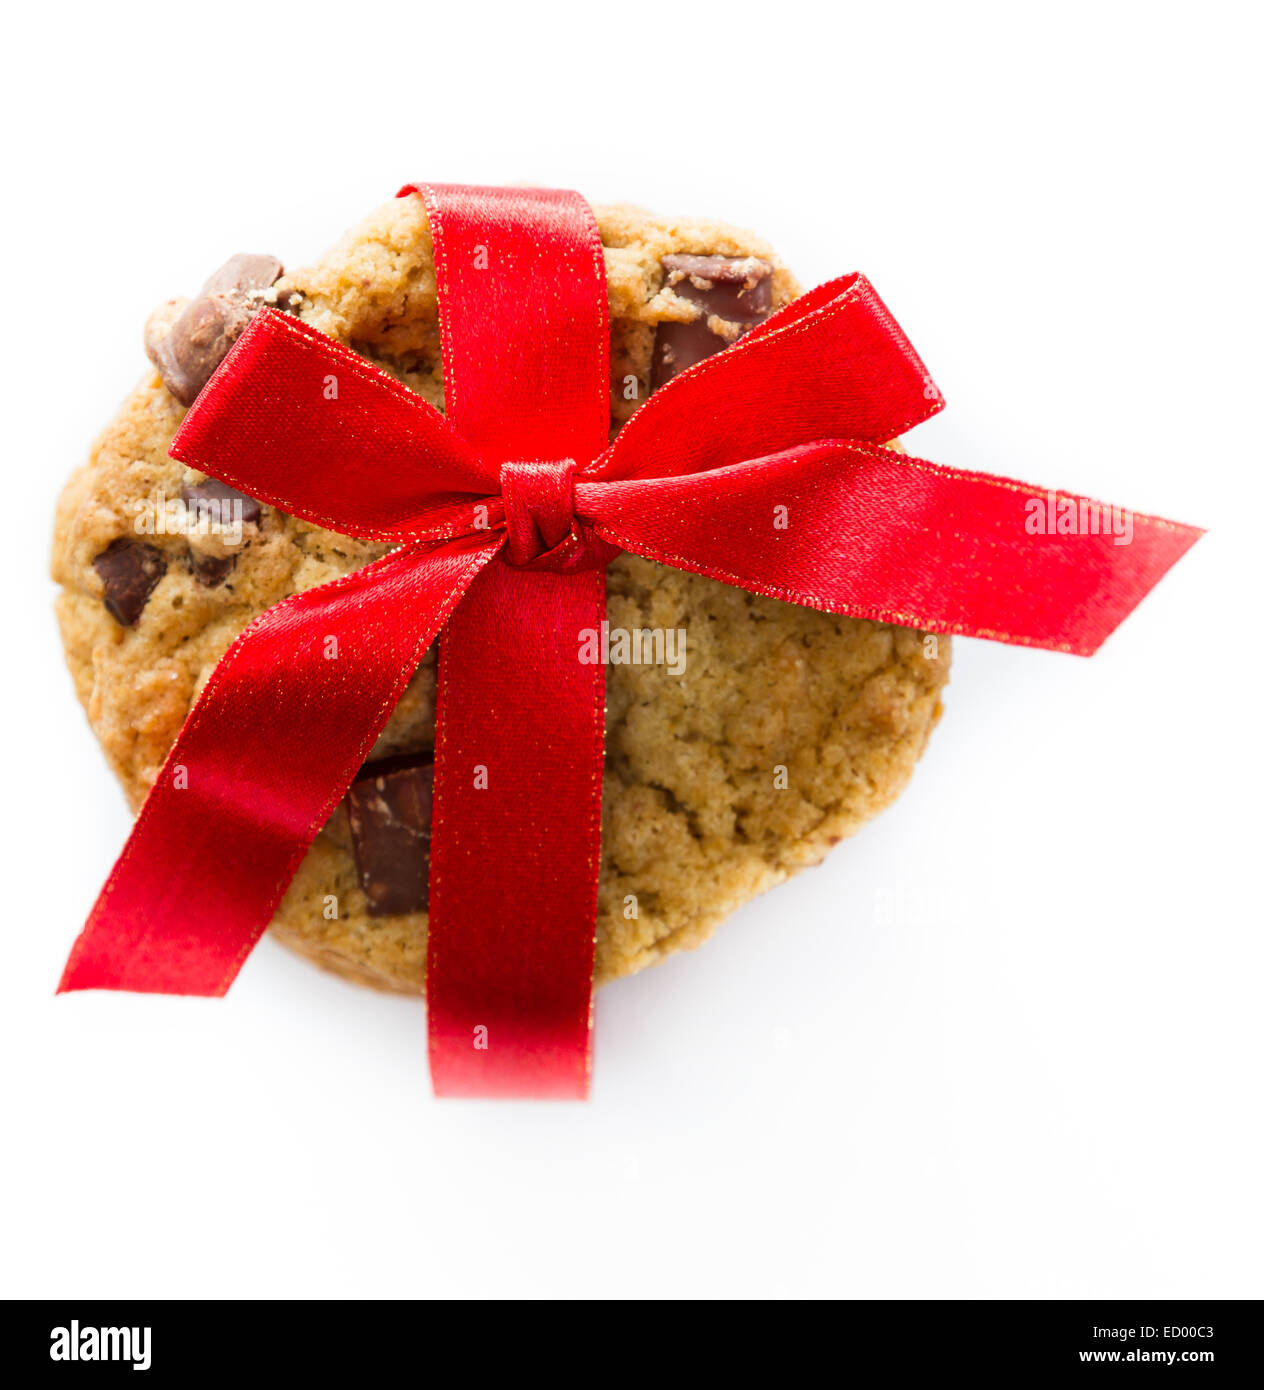 close up of home made chocolate chip cookies with a red ribbon  isolated on a white background - Stock Image